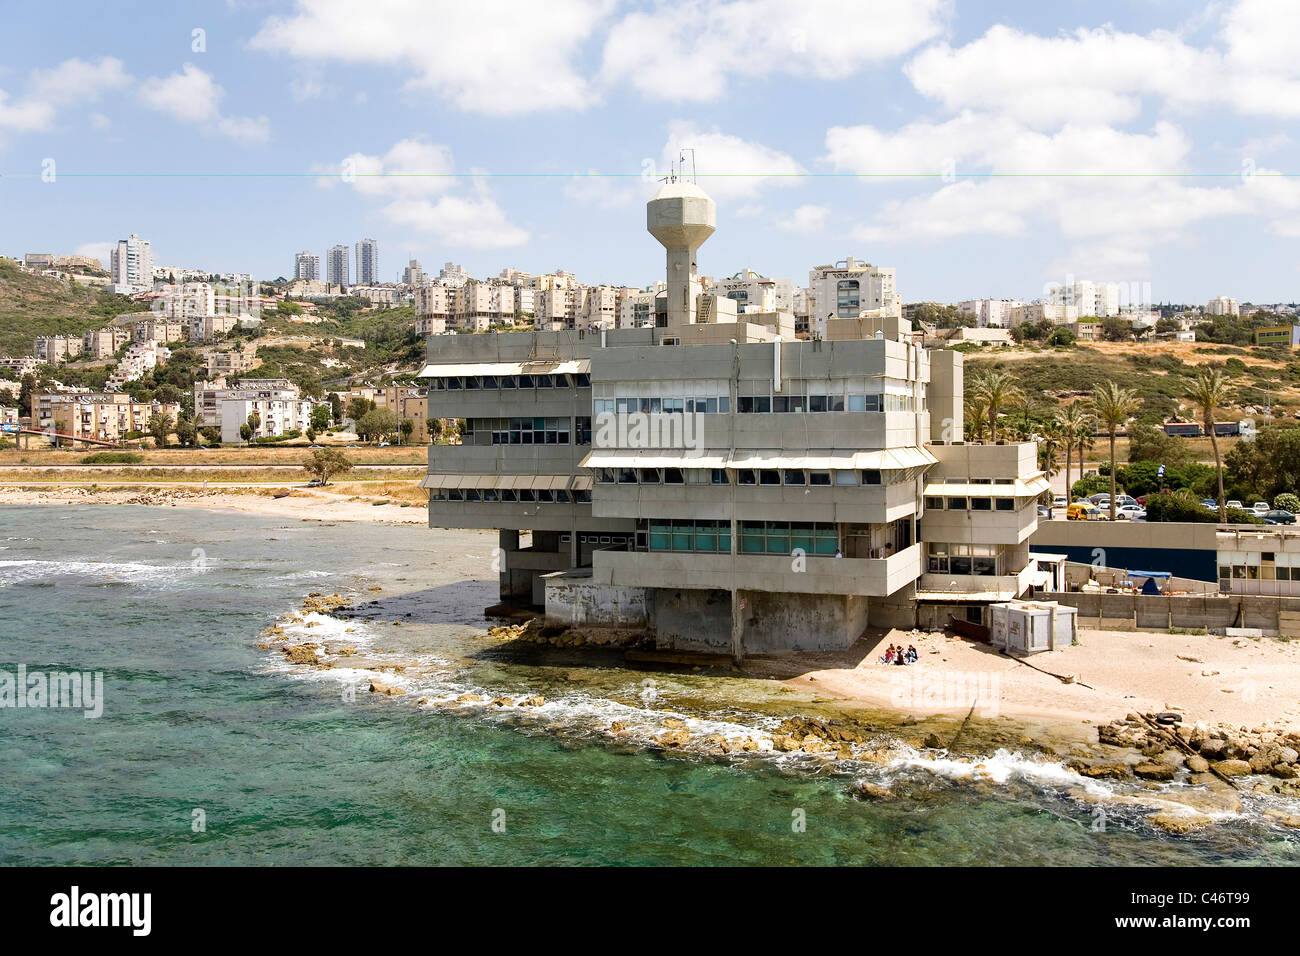 Aerial photograph of the Oceanographic Research Institution in the city of Haifa - Stock Image